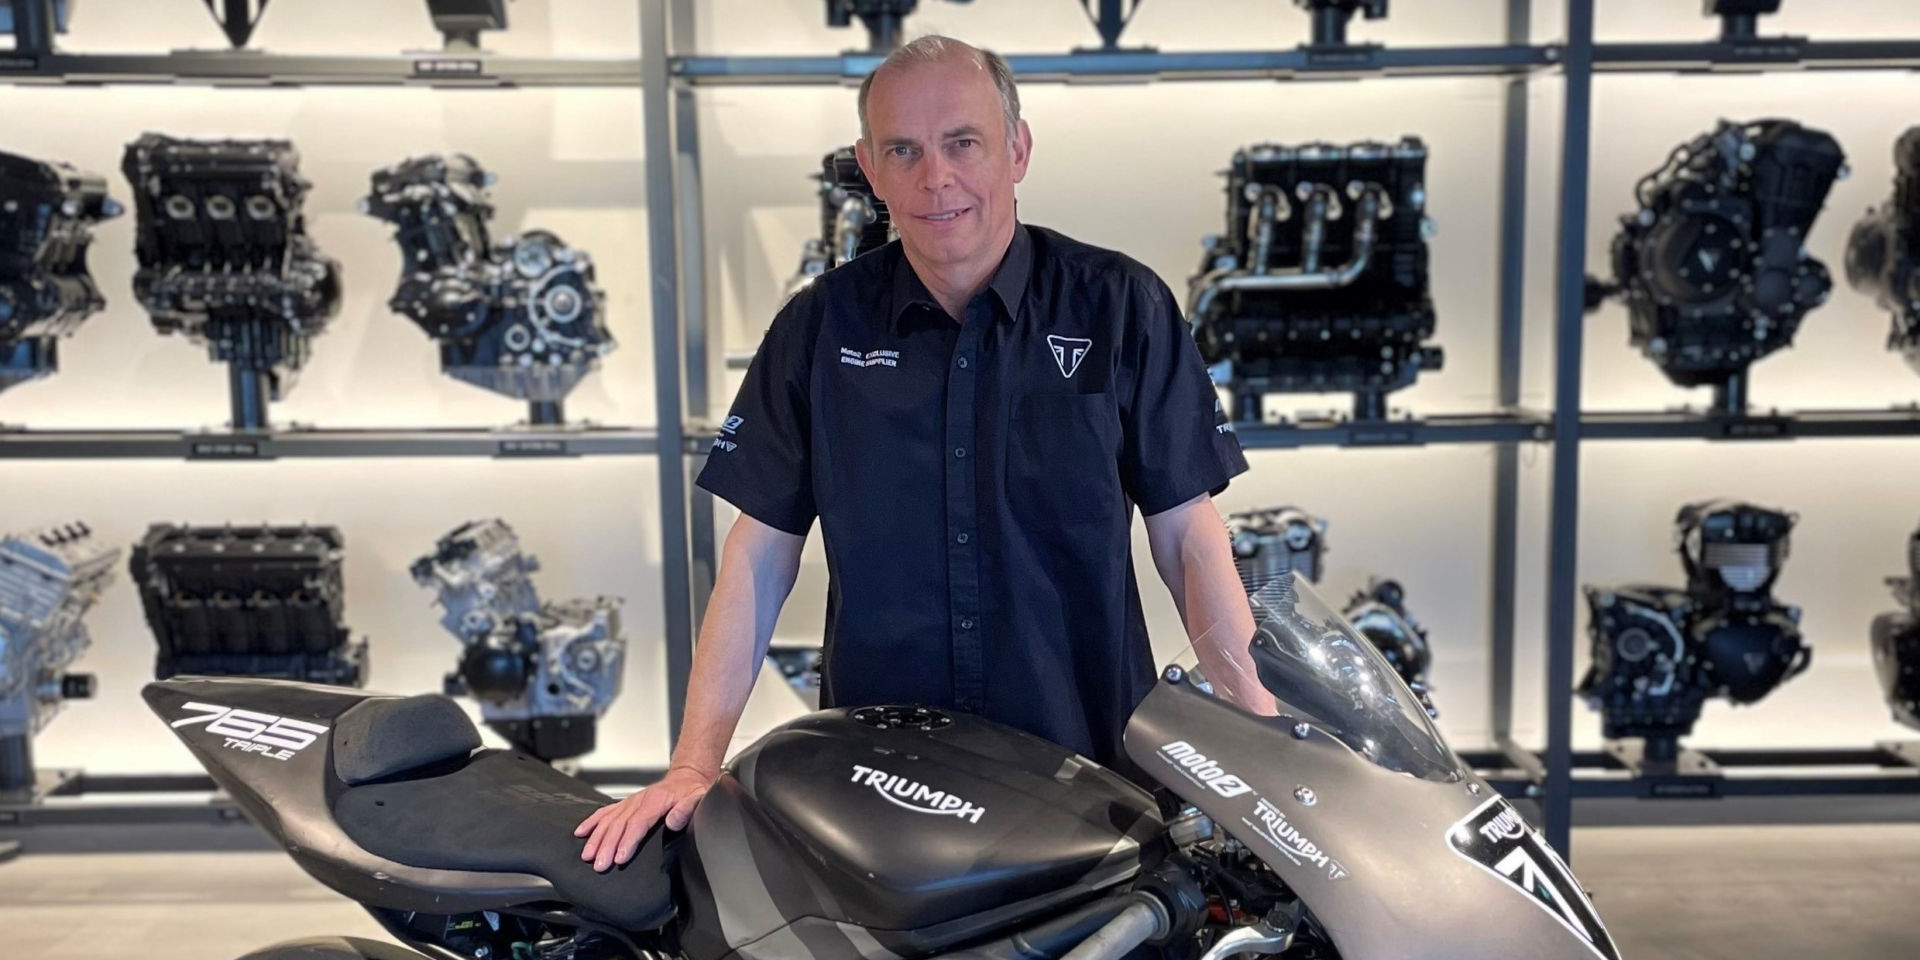 Triumph Global Racing Manager Jeremy Appleton. Photo courtesy Triumph Motorcycles.